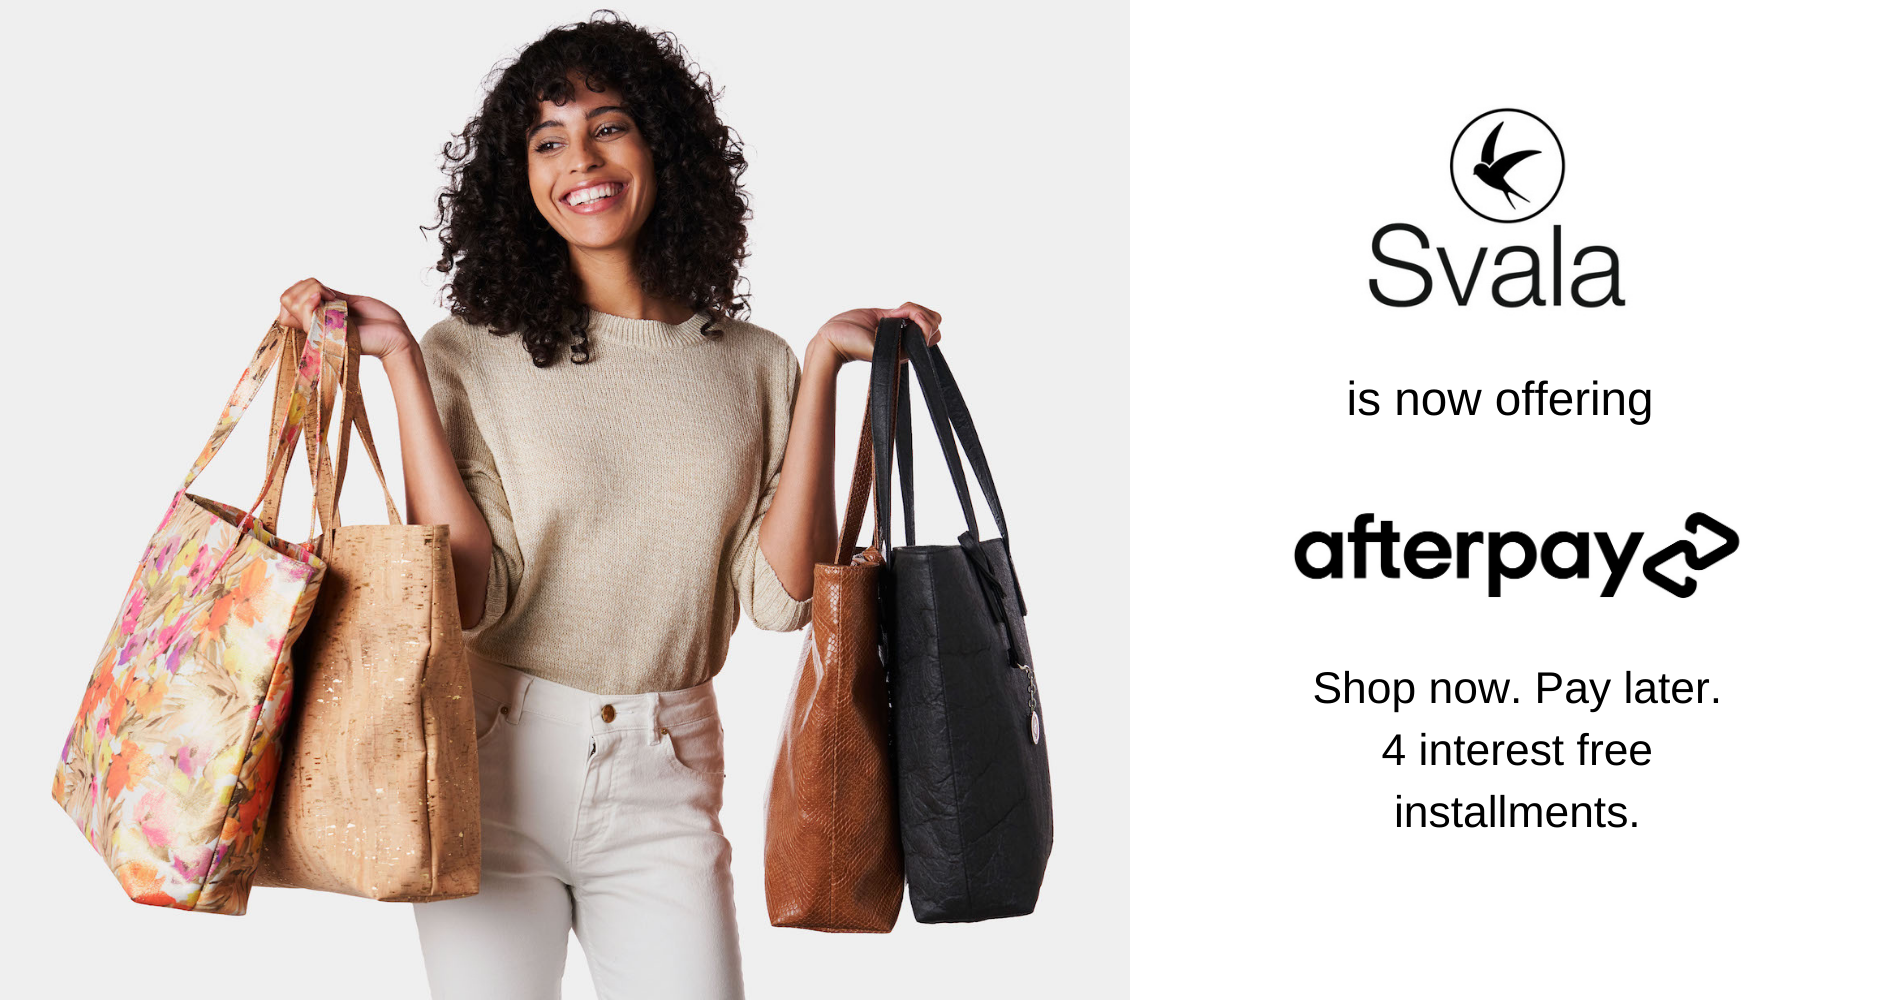 Svala offers Afterpay